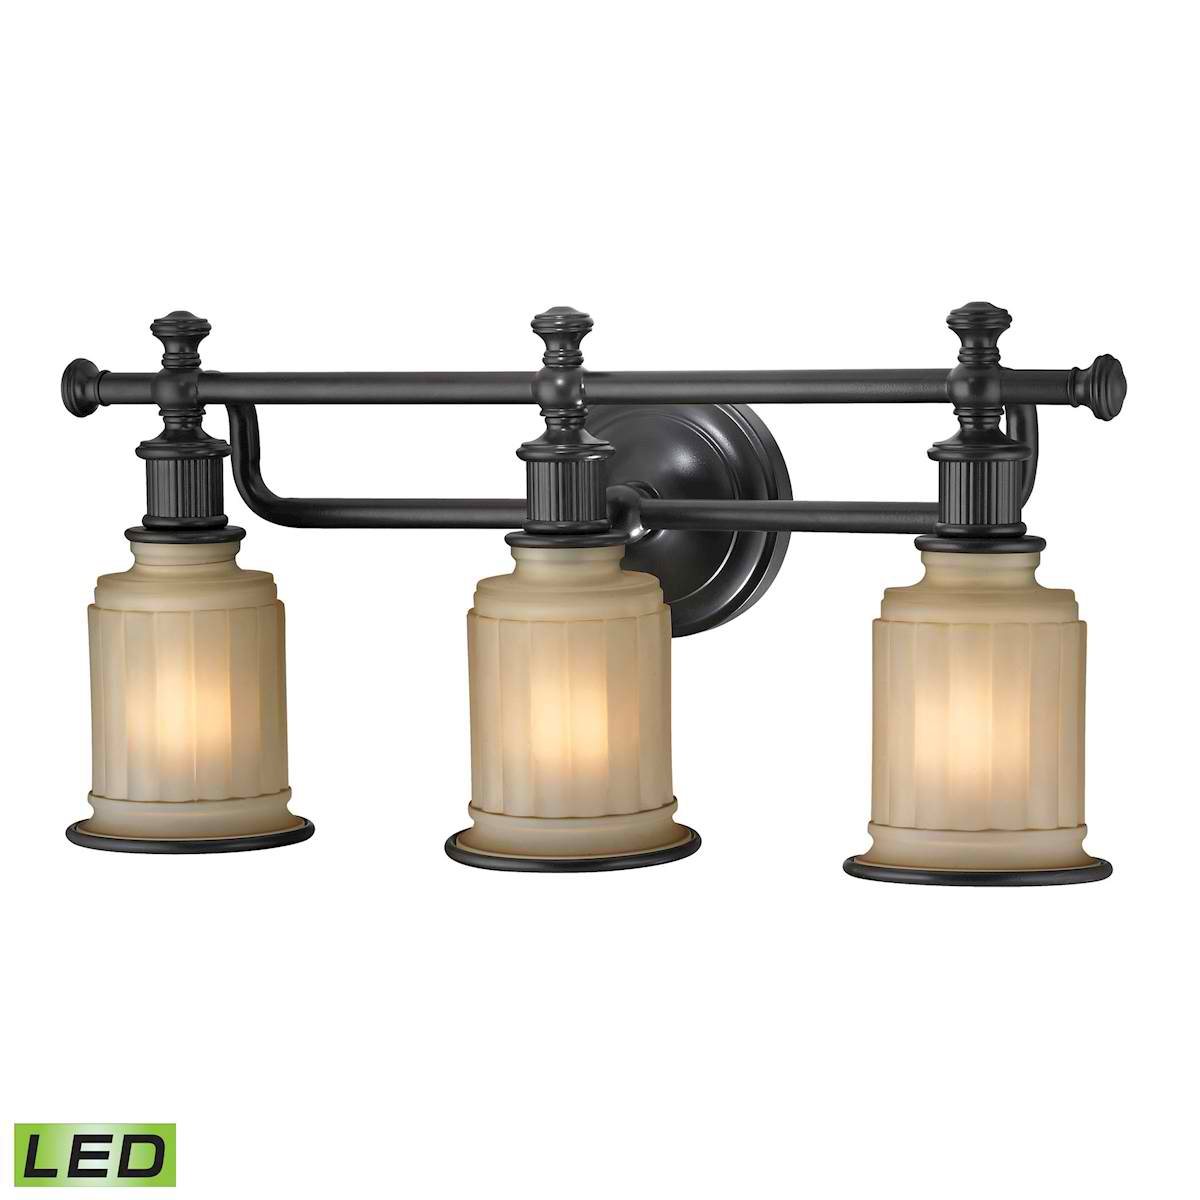 Acadia Collection 3 Light Bath in Oil Rubbed Bronze - LED, 800 Lumens (2400 Lumens Total) with Full